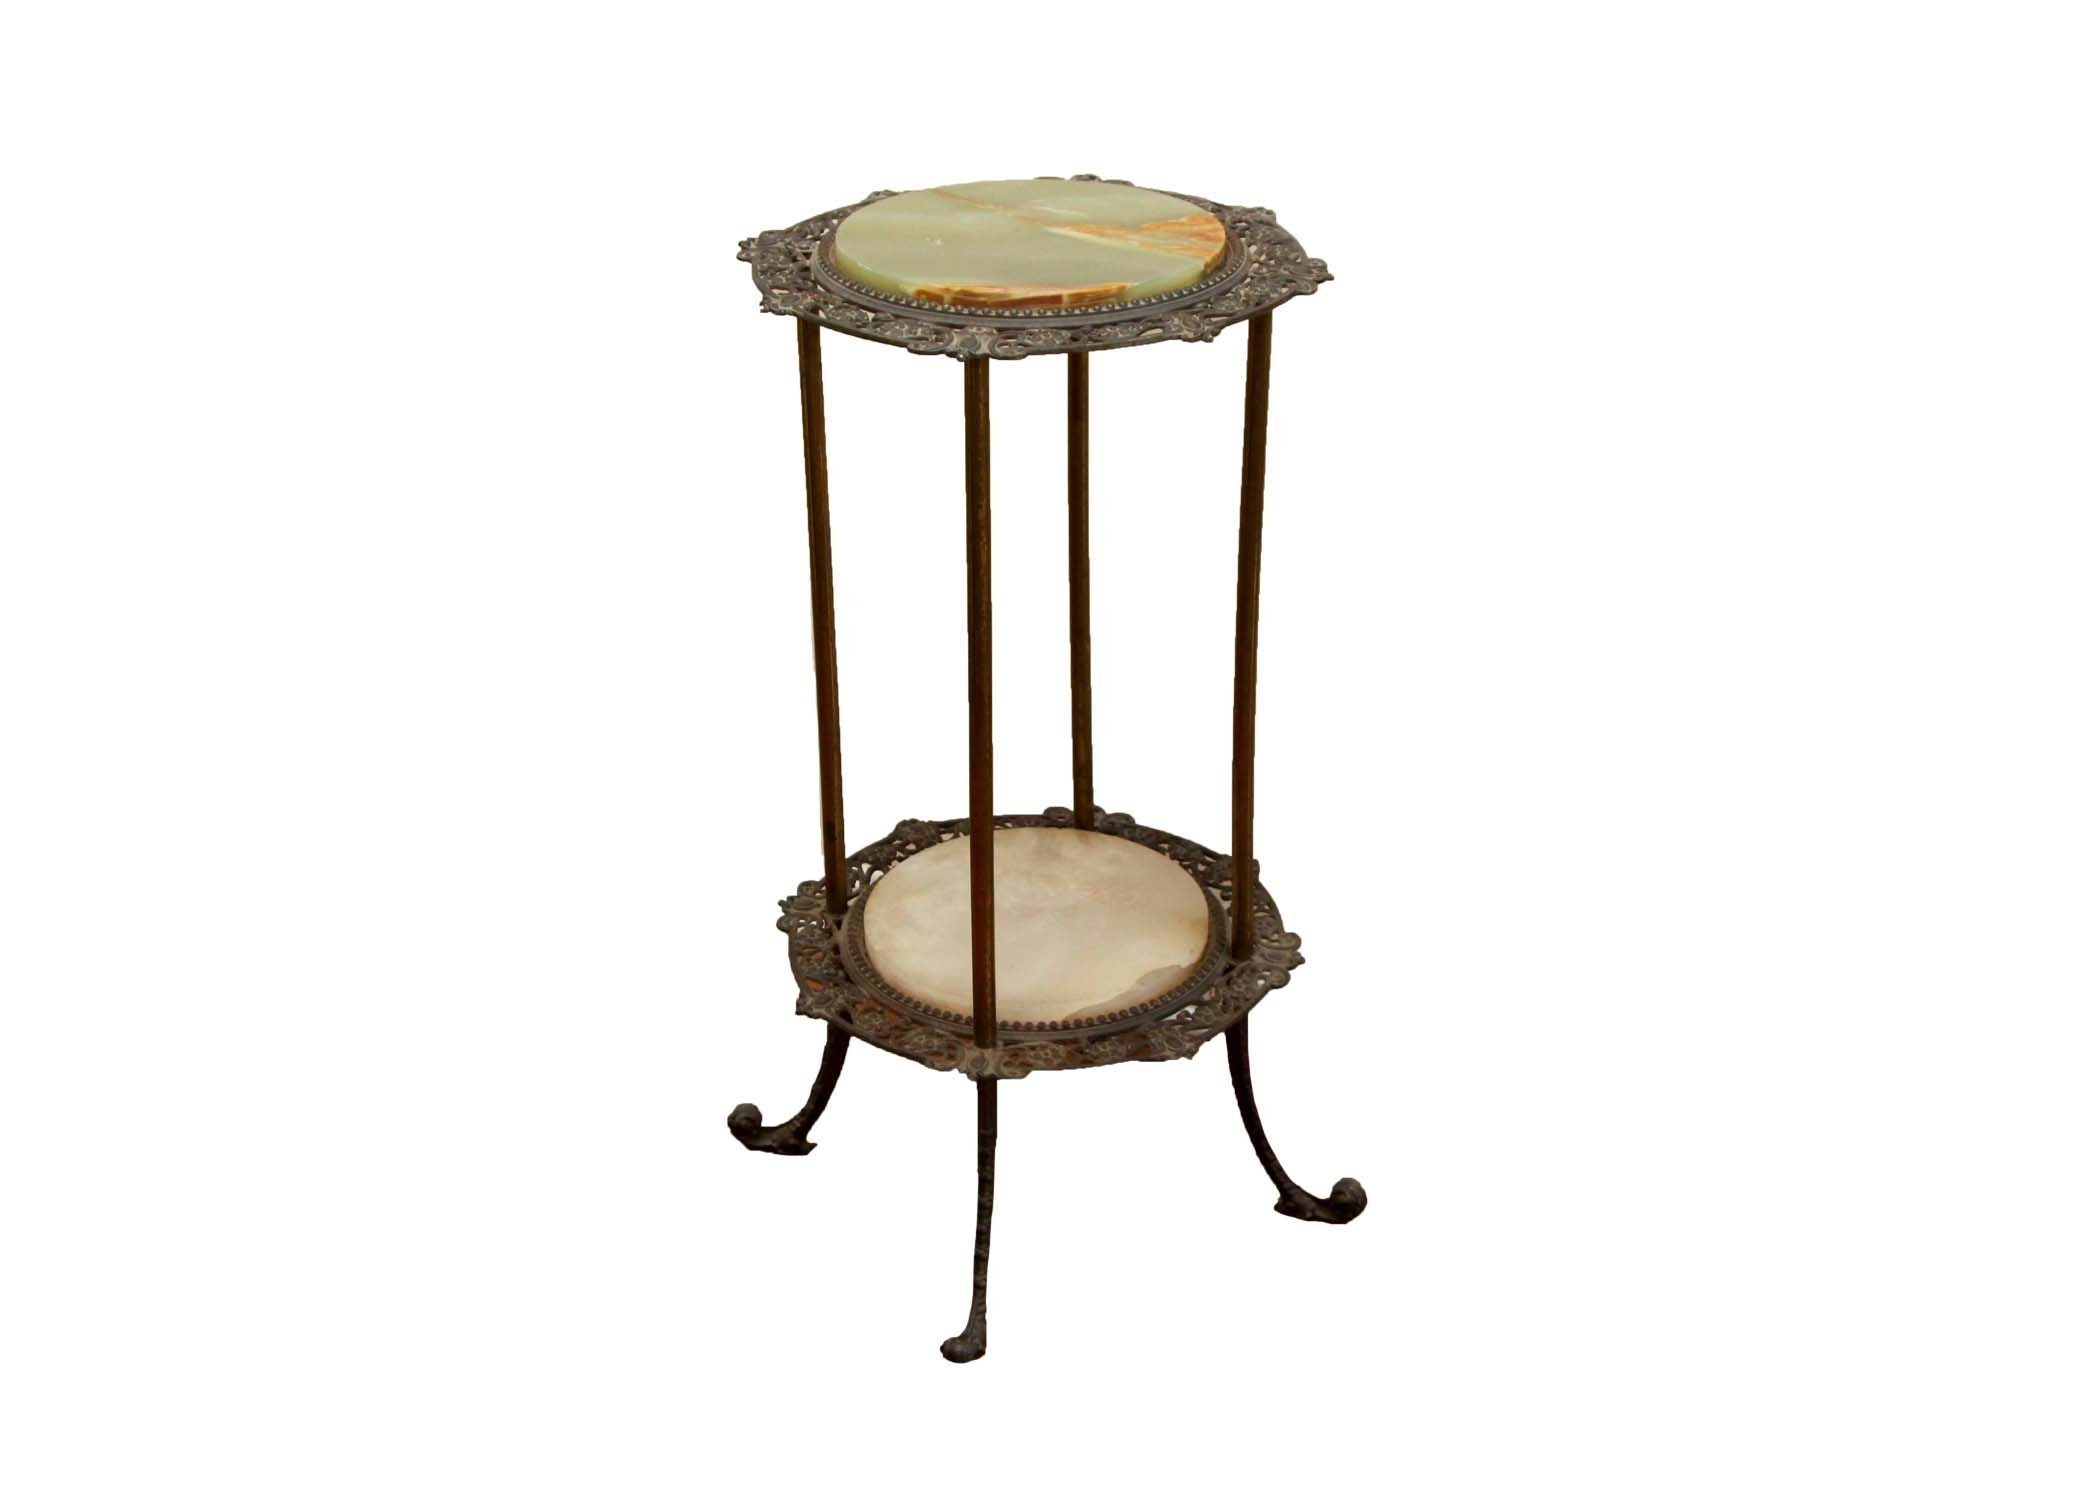 Antique Metal and Marble Tiered Side Table